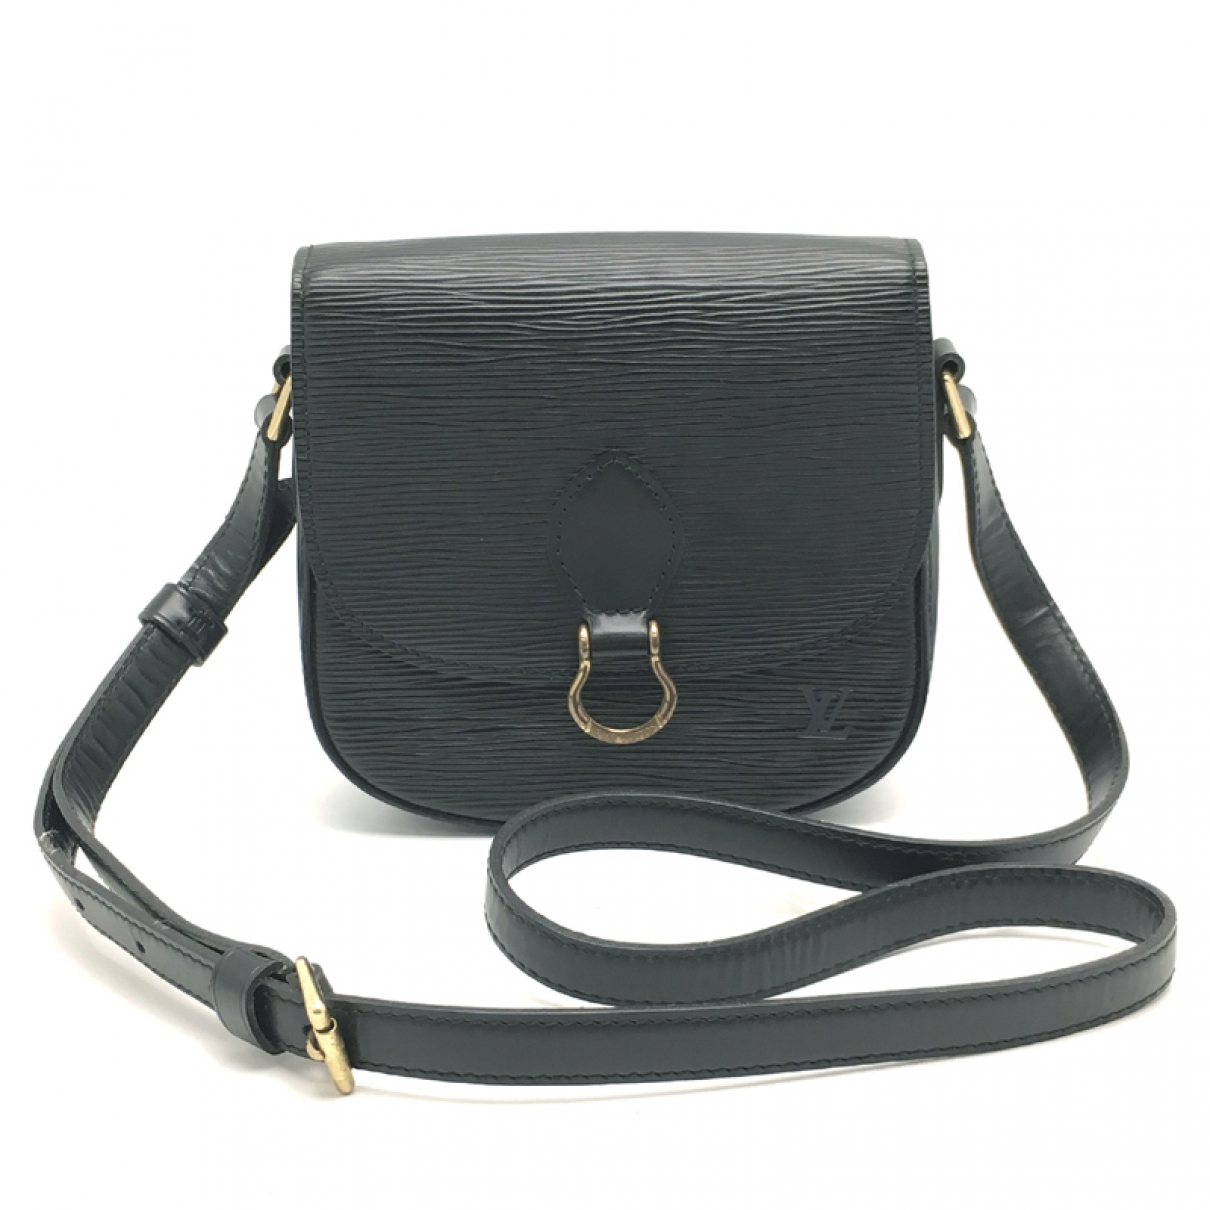 Louis Vuitton Saint Cloud vintage Black Leather handbag for Women \N